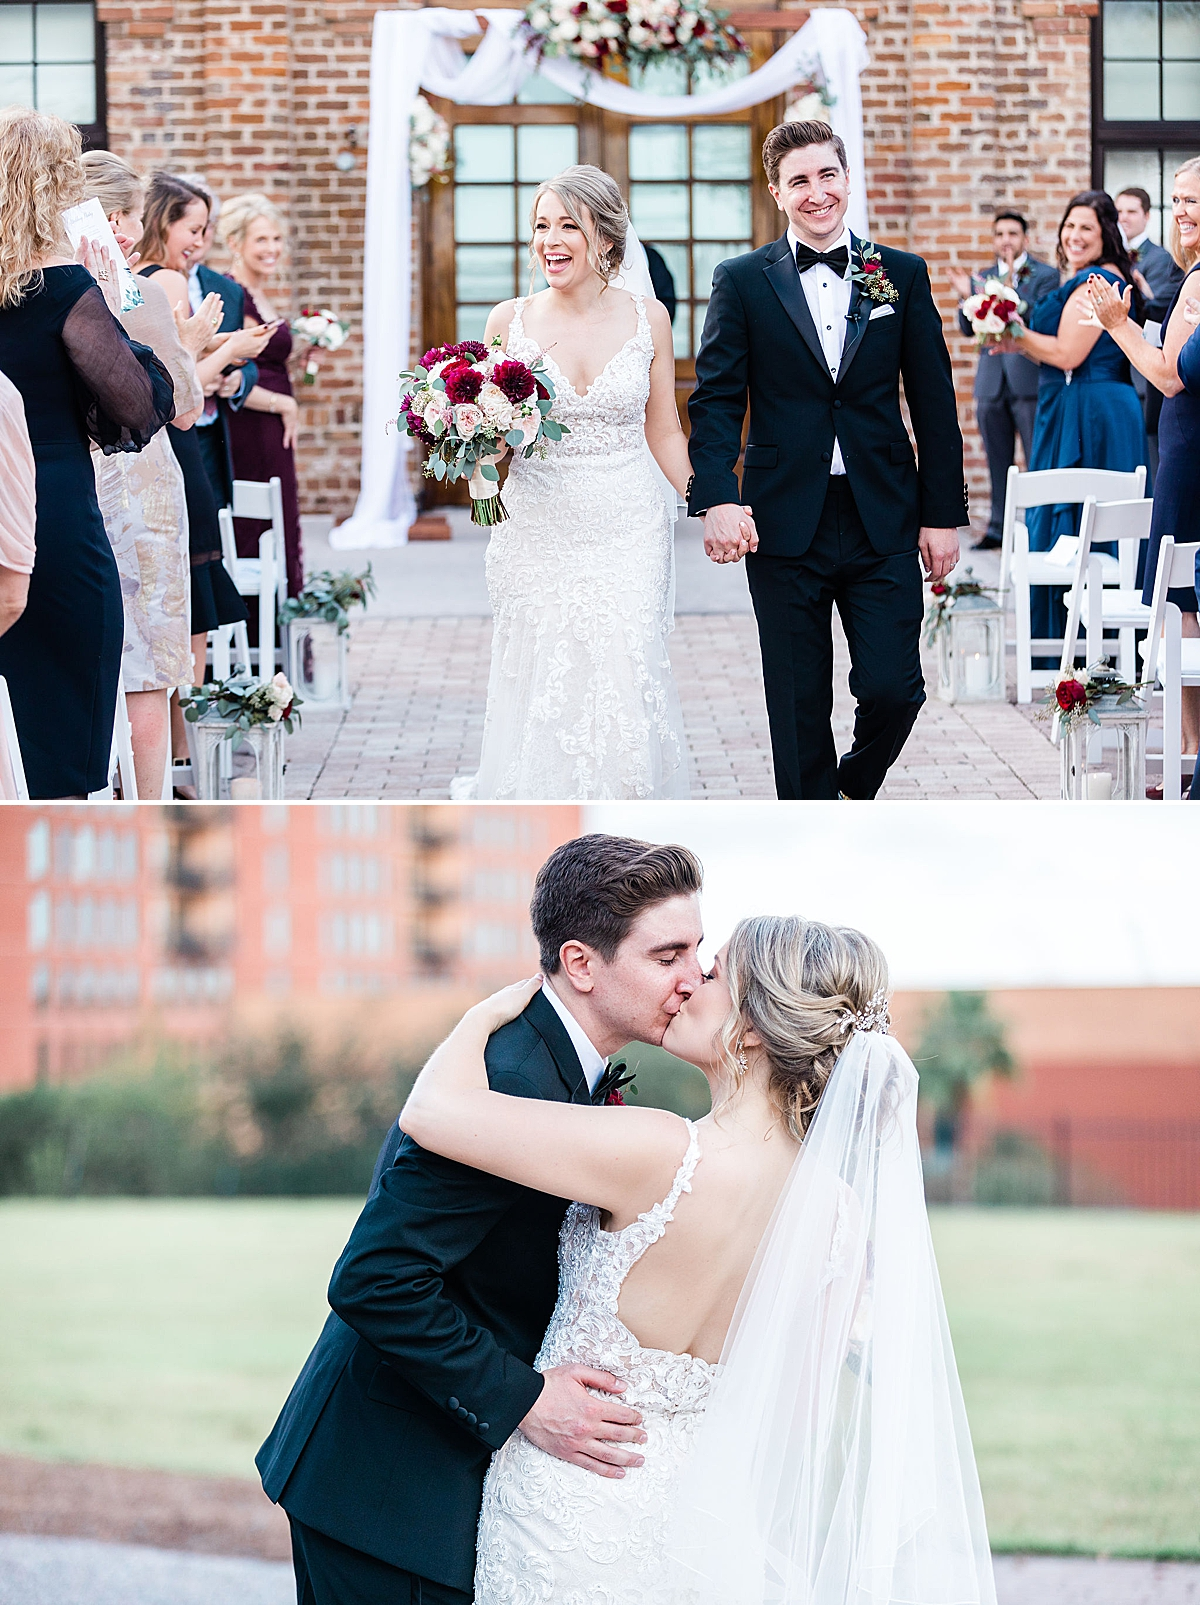 Kate and Anthony's Charles H Morris Center Wedding in Savannah